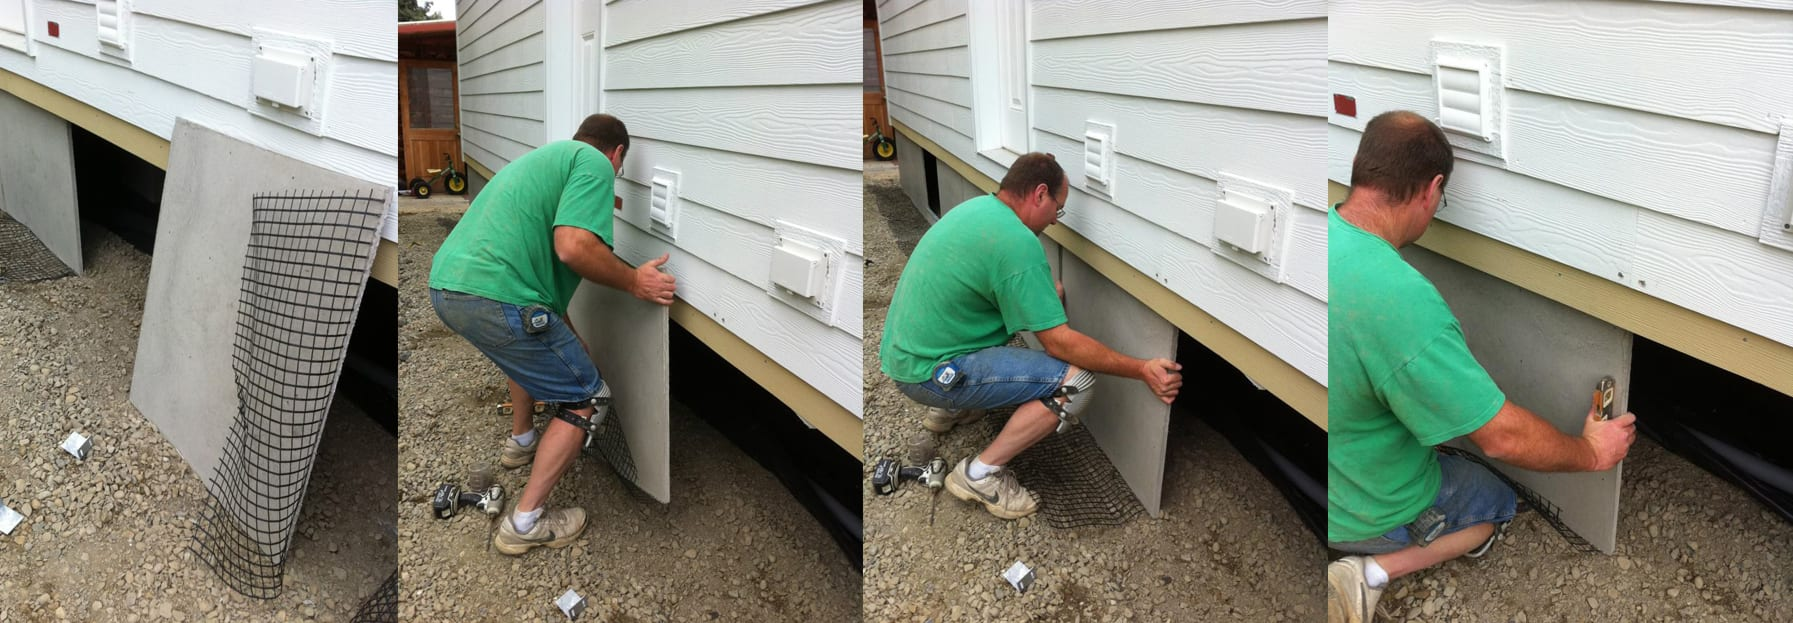 DURASKIRT-INSTALL-SKIRTING-FRONT Cement Board For Mobile Home Skirting on cement foundation mobile home, metal roof on mobile home, cement porches manufactured home, 1993 champion mobile home, painting wallboard in mobile home, front steps for mobile home, brick underpinning for mobile home, stucco mobile home, covered porch designs mobile home, vapor barrier under mobile home, cement siding panels, cocheco park mobile home, cheap underpinning for mobile home, cement skirting mobile home kit, cement skirting for homes, helical pier foundation mobile home, chimney installation mobile home,